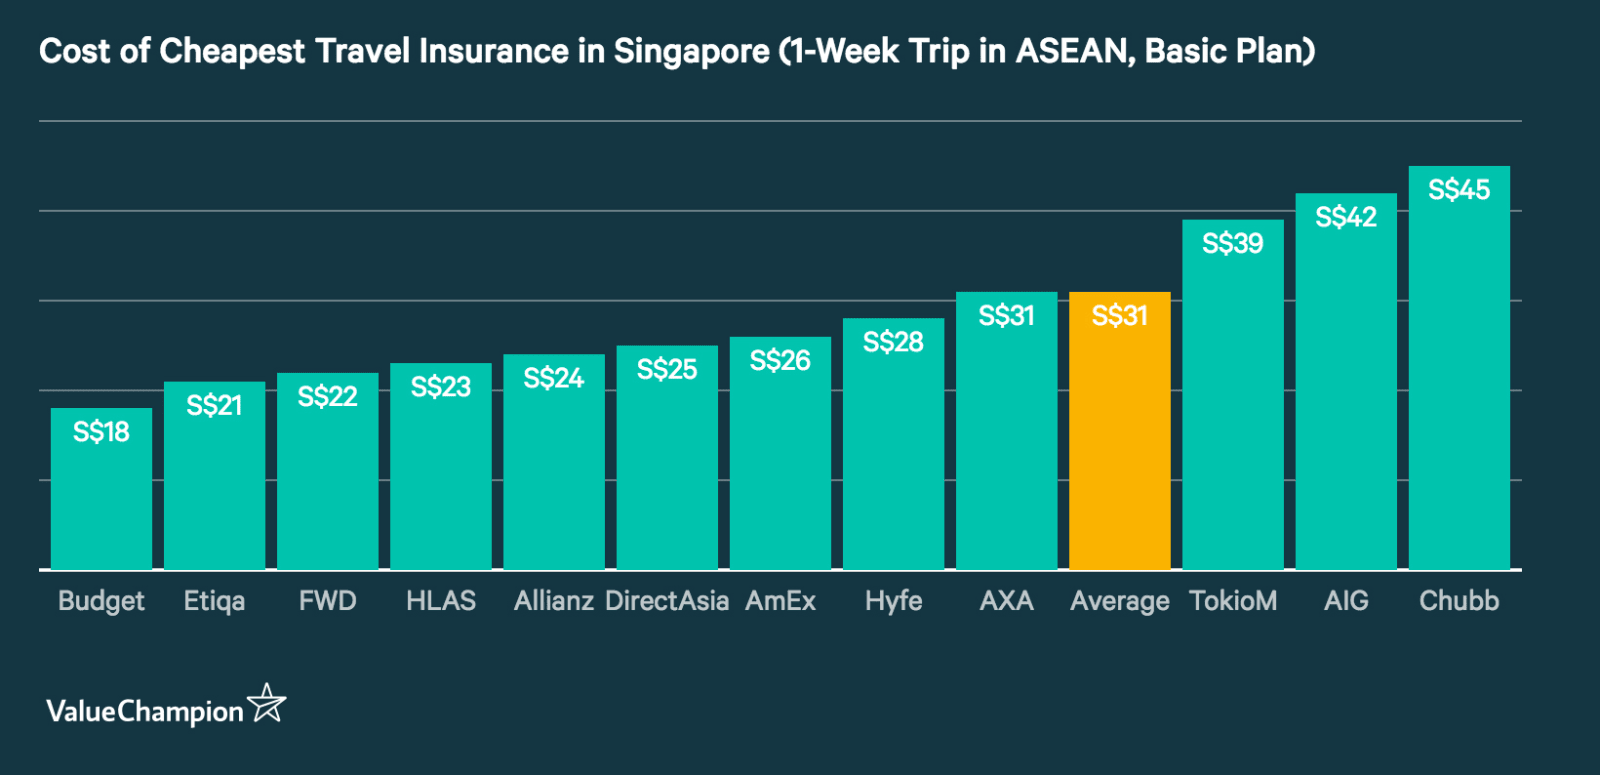 This graph compares the price of major travel insurance policies in Singapore for a 1-week trip in the ASEAN region